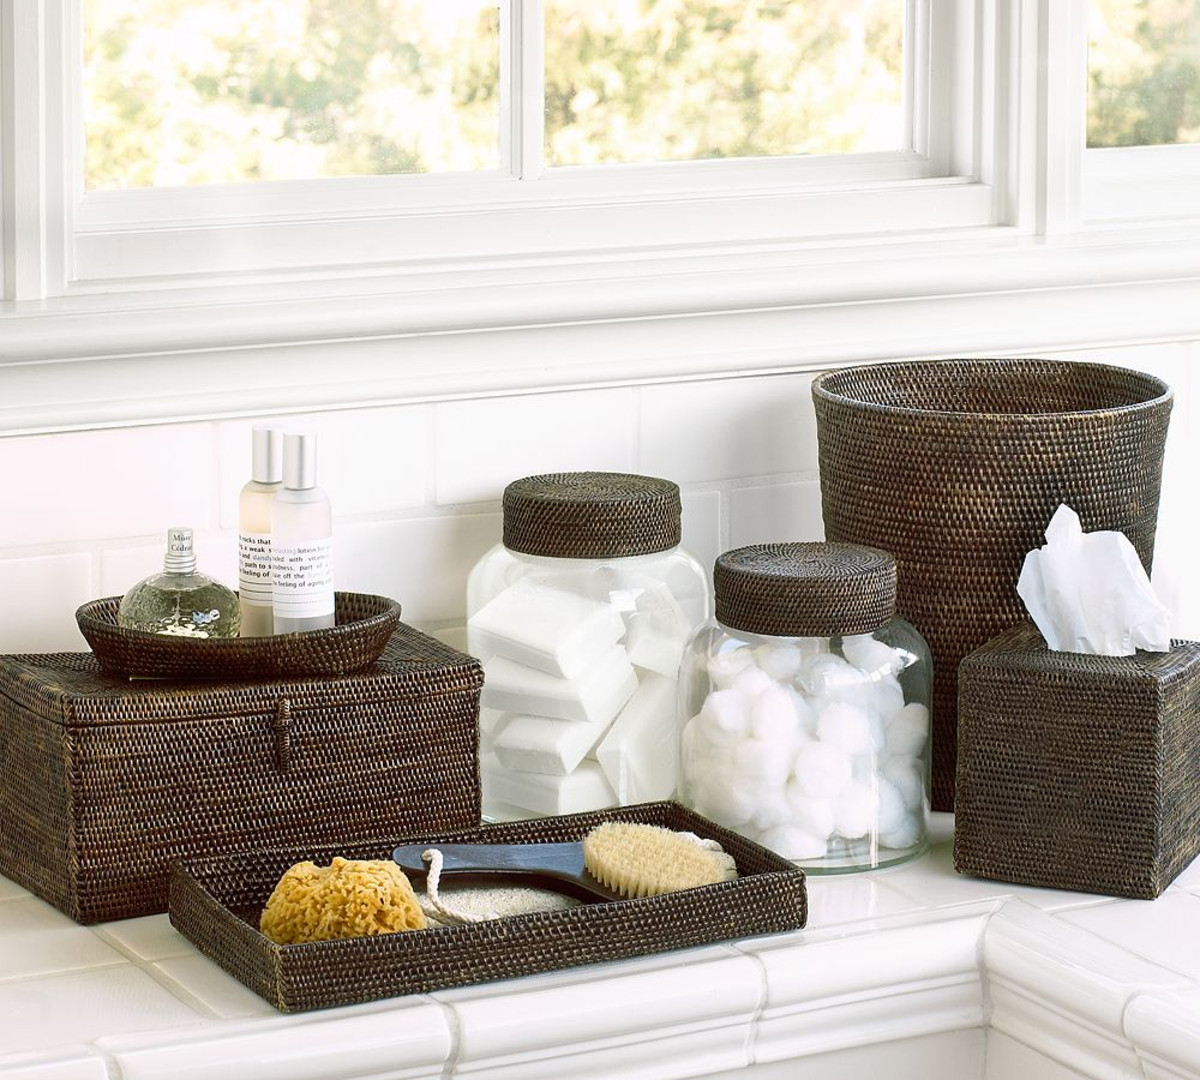 spa bathroom accessory ideas photo - 10